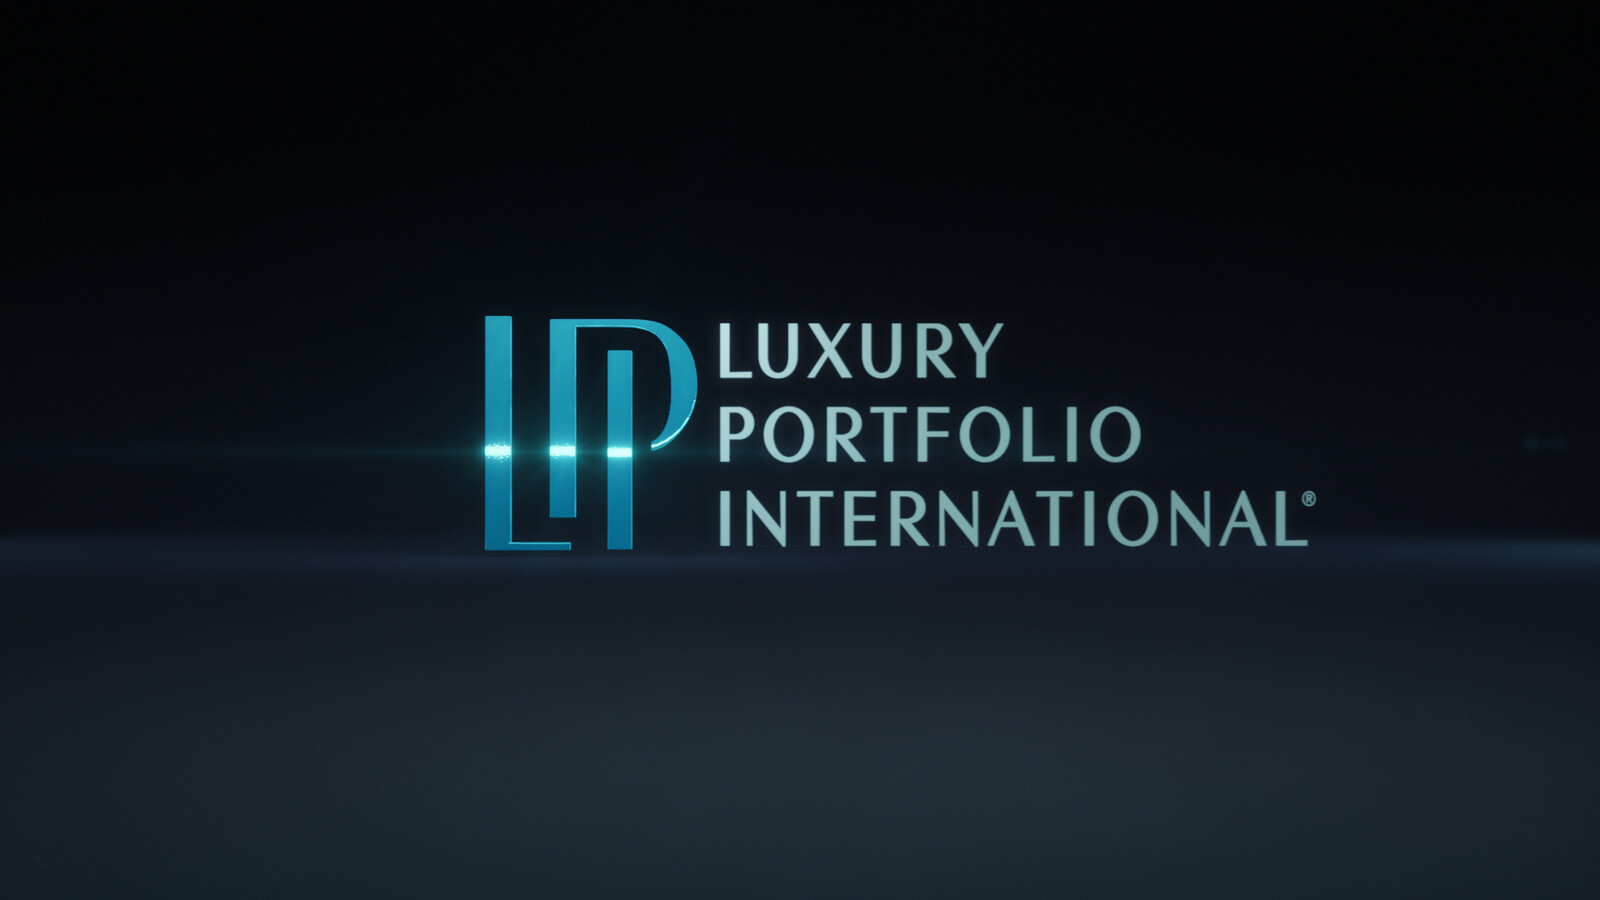 Luxury Portfolio International Logo Animation